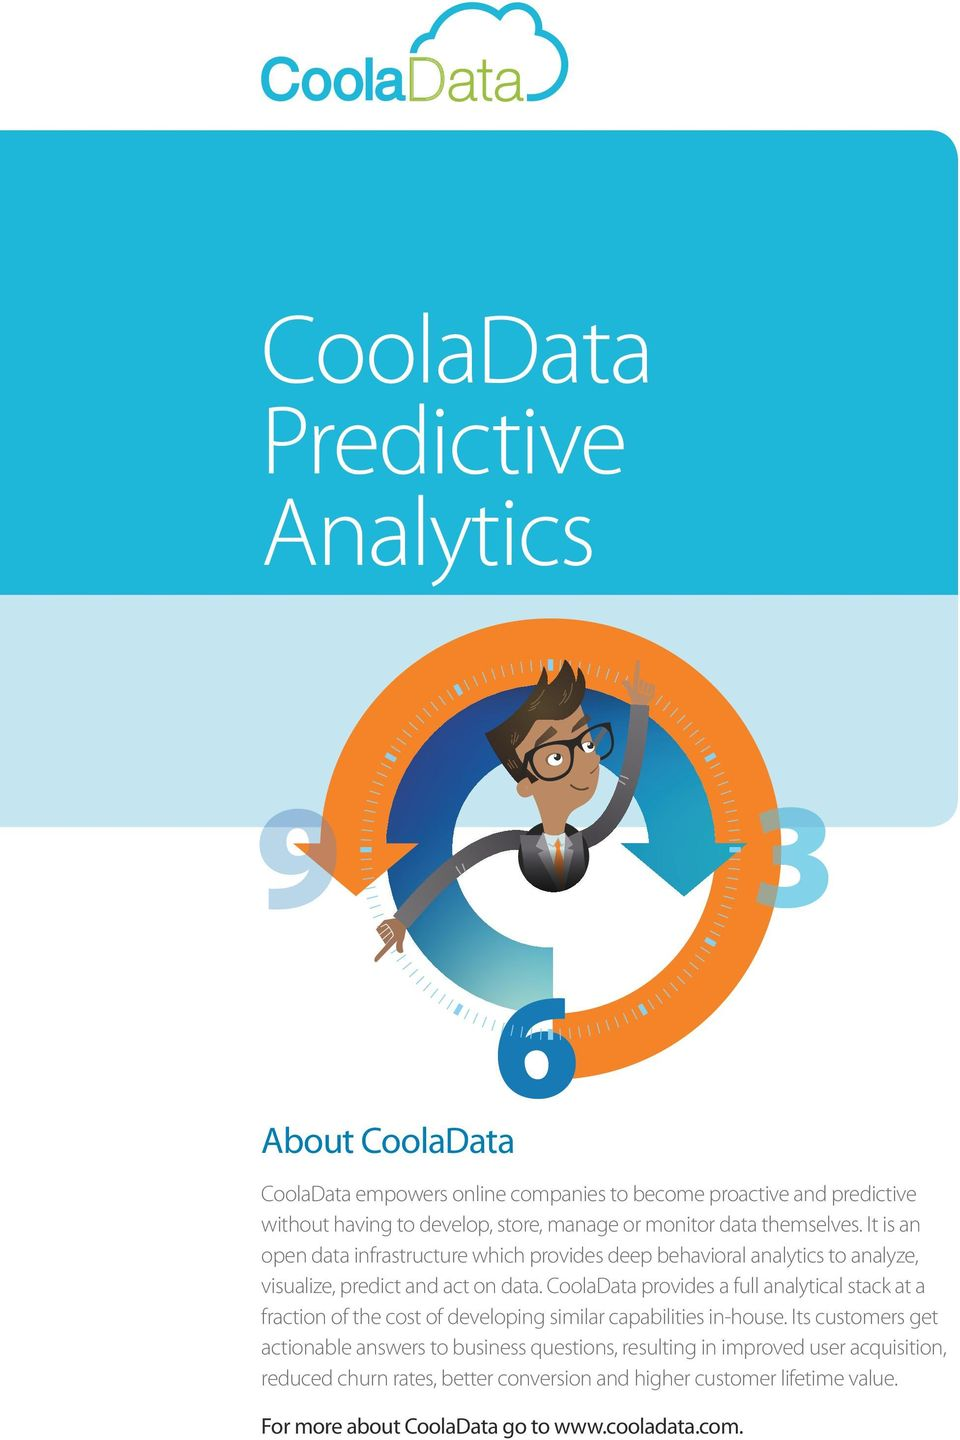 CoolaData provides a full analytical stack at a fraction of the cost of developing similar capabilities in-house.